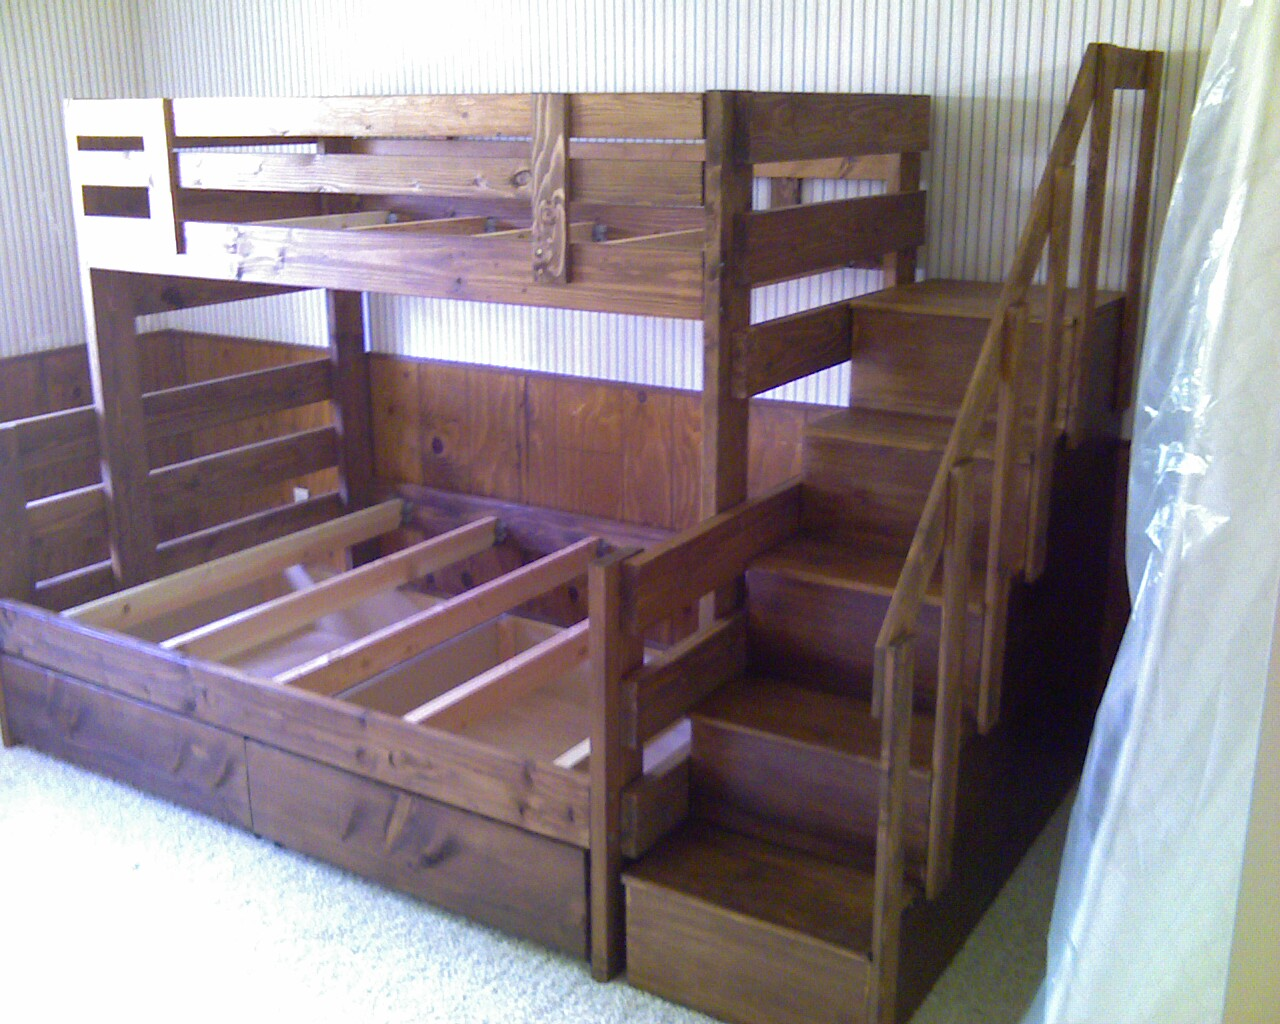 Bunk Beds Diy, Bunk Beds With Stairs, Diy Bunk Beds For Girls Room ...